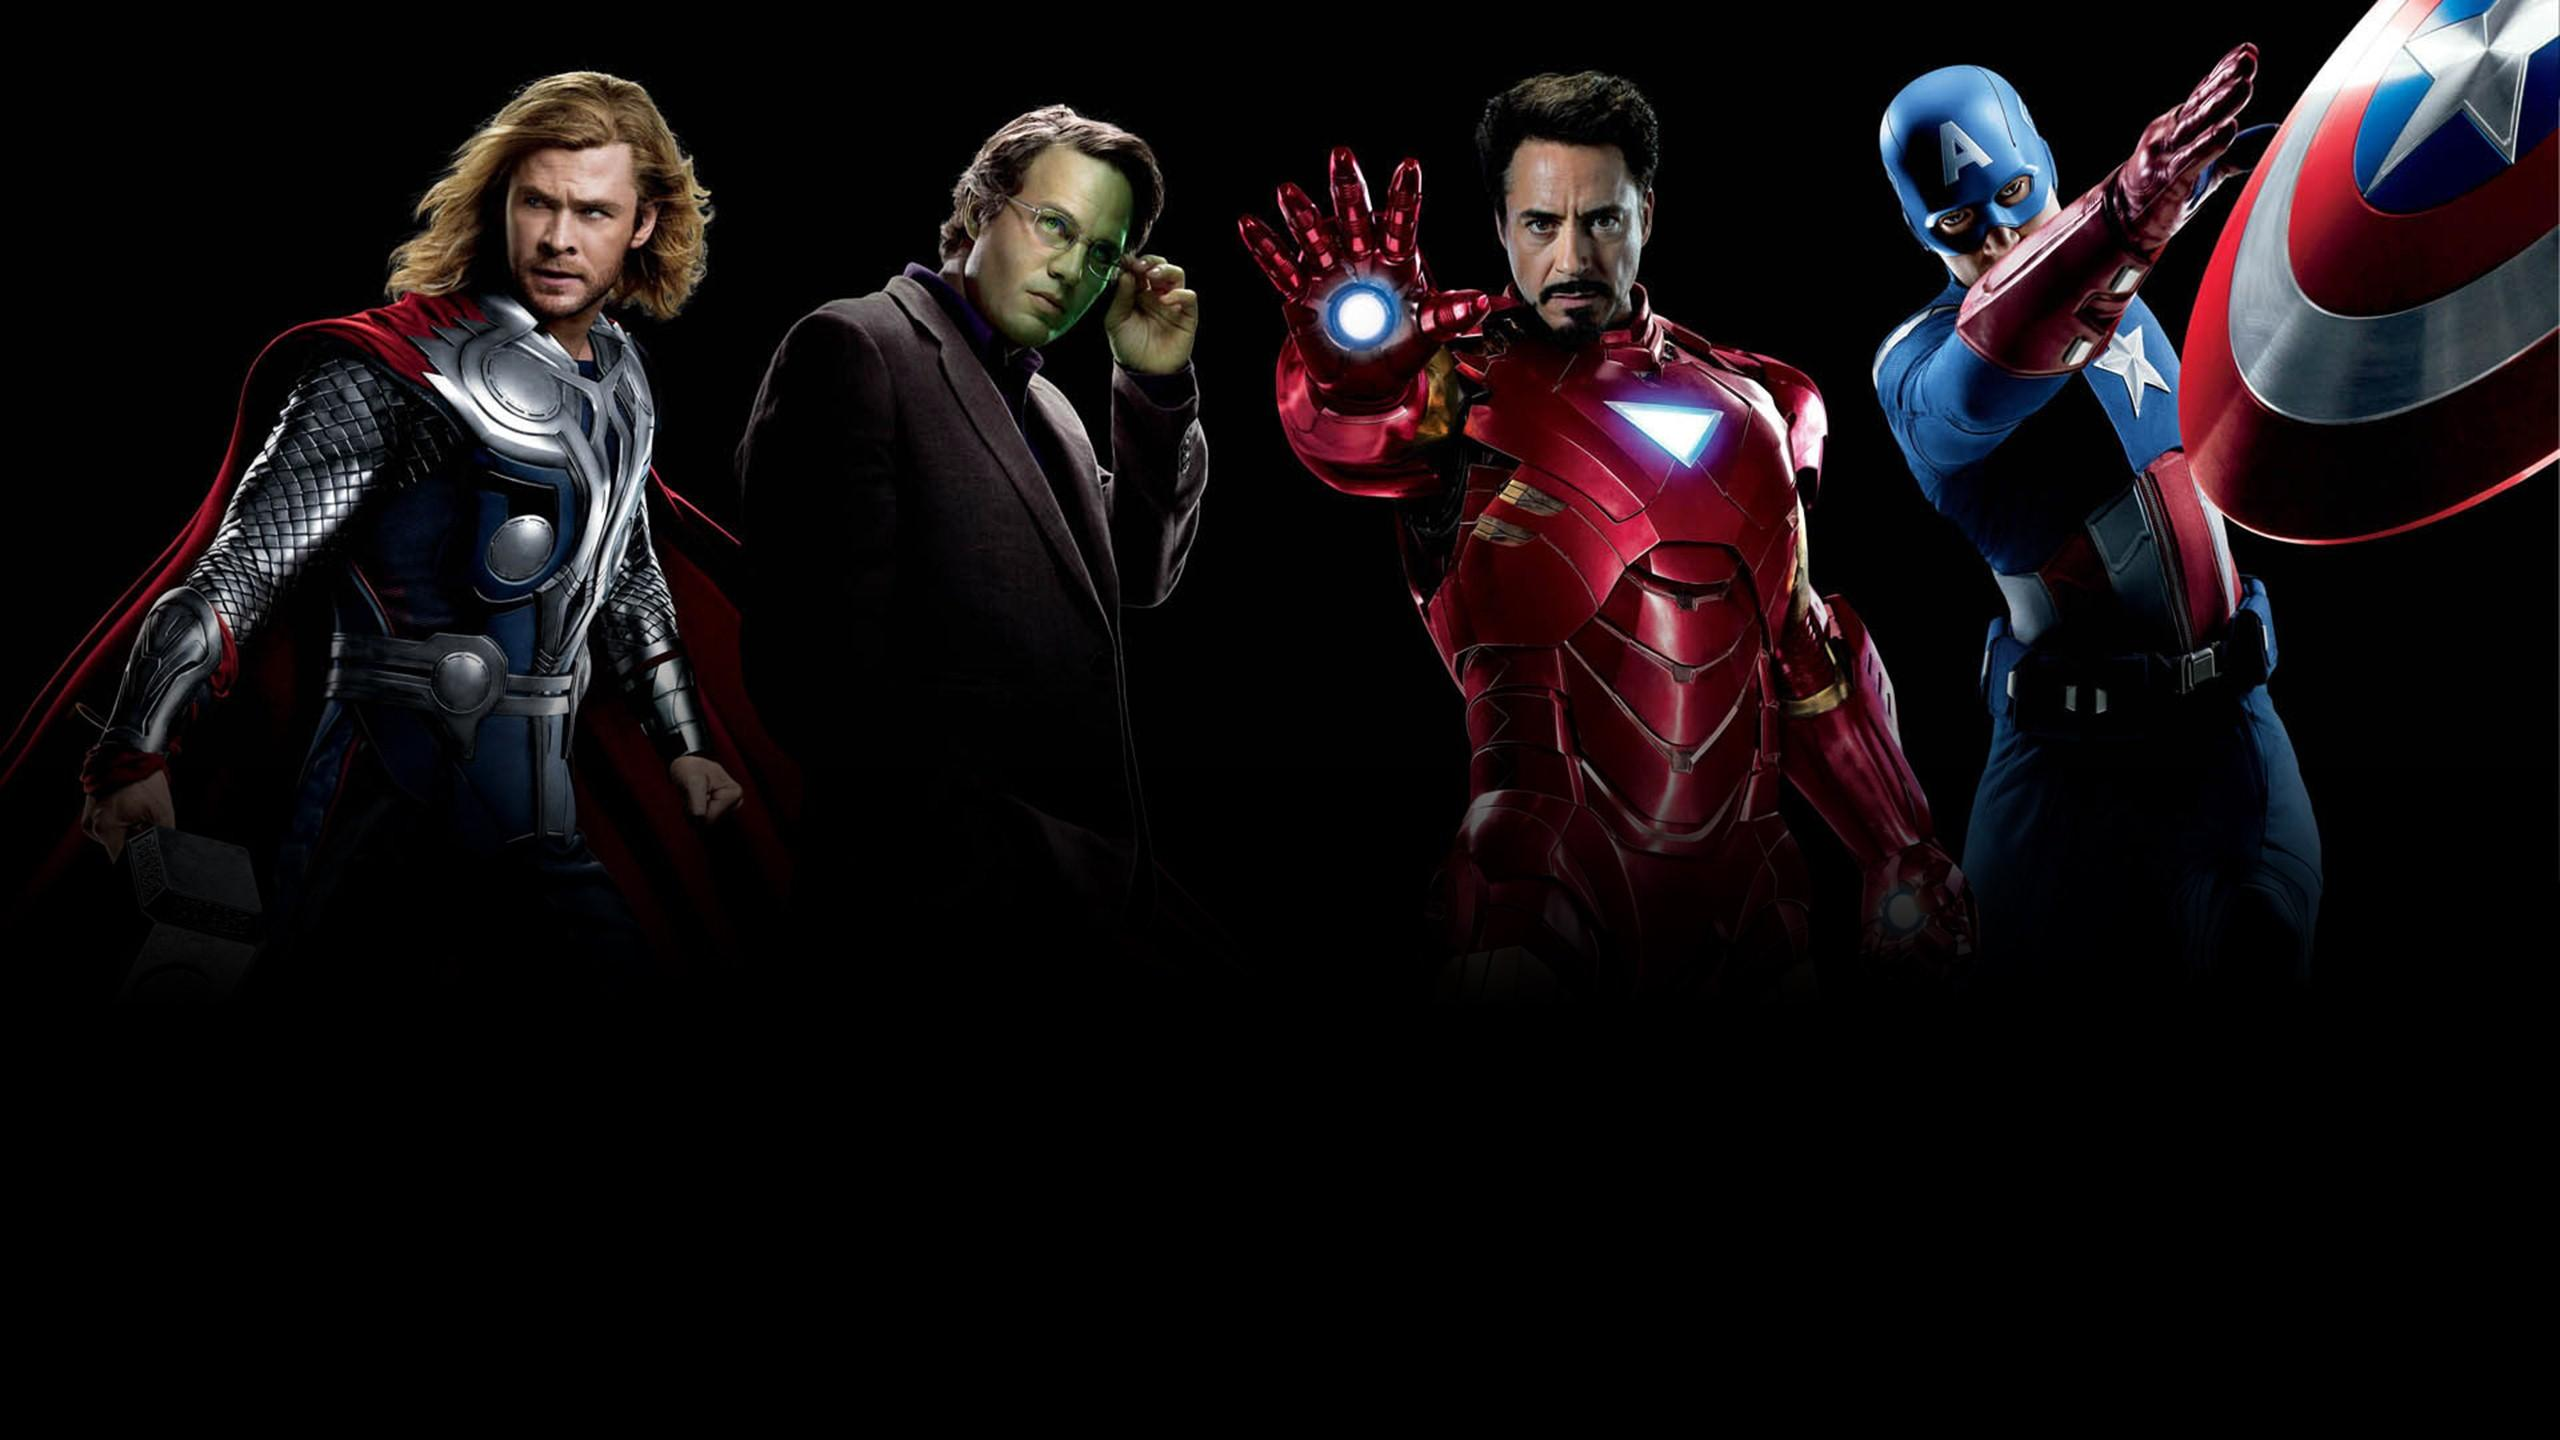 Avengers 4 Wallpapers: Page 7 Of Avengers Wallpapers, Photos And Desktop Backgrounds